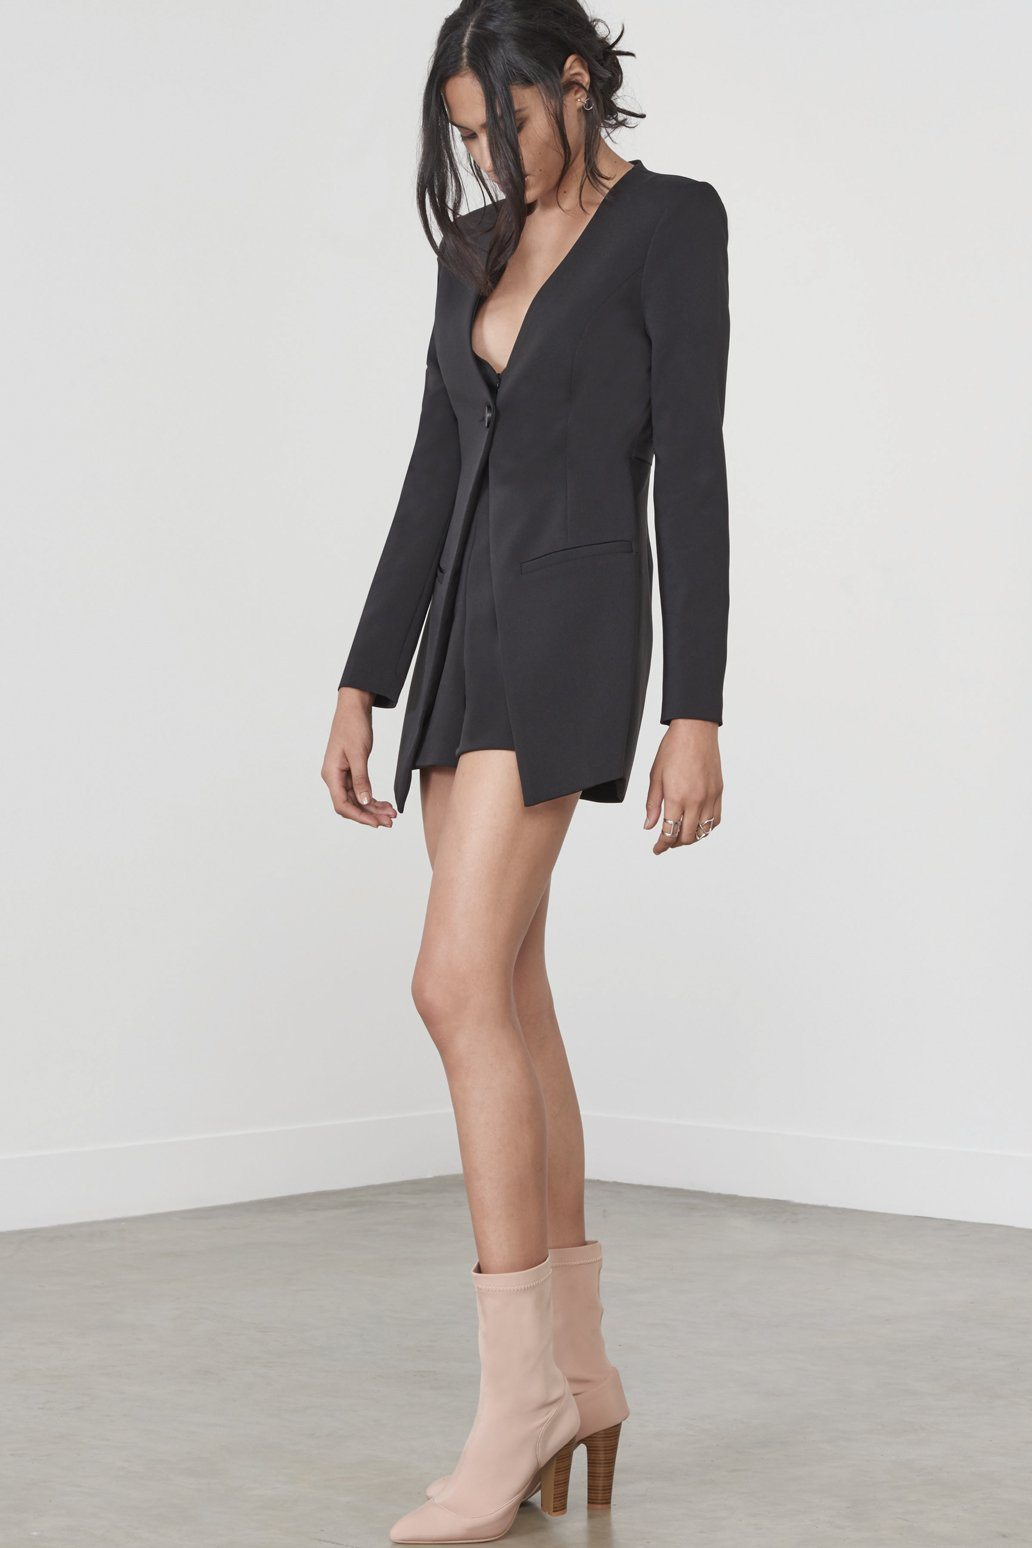 Blazer Playsuit in Black